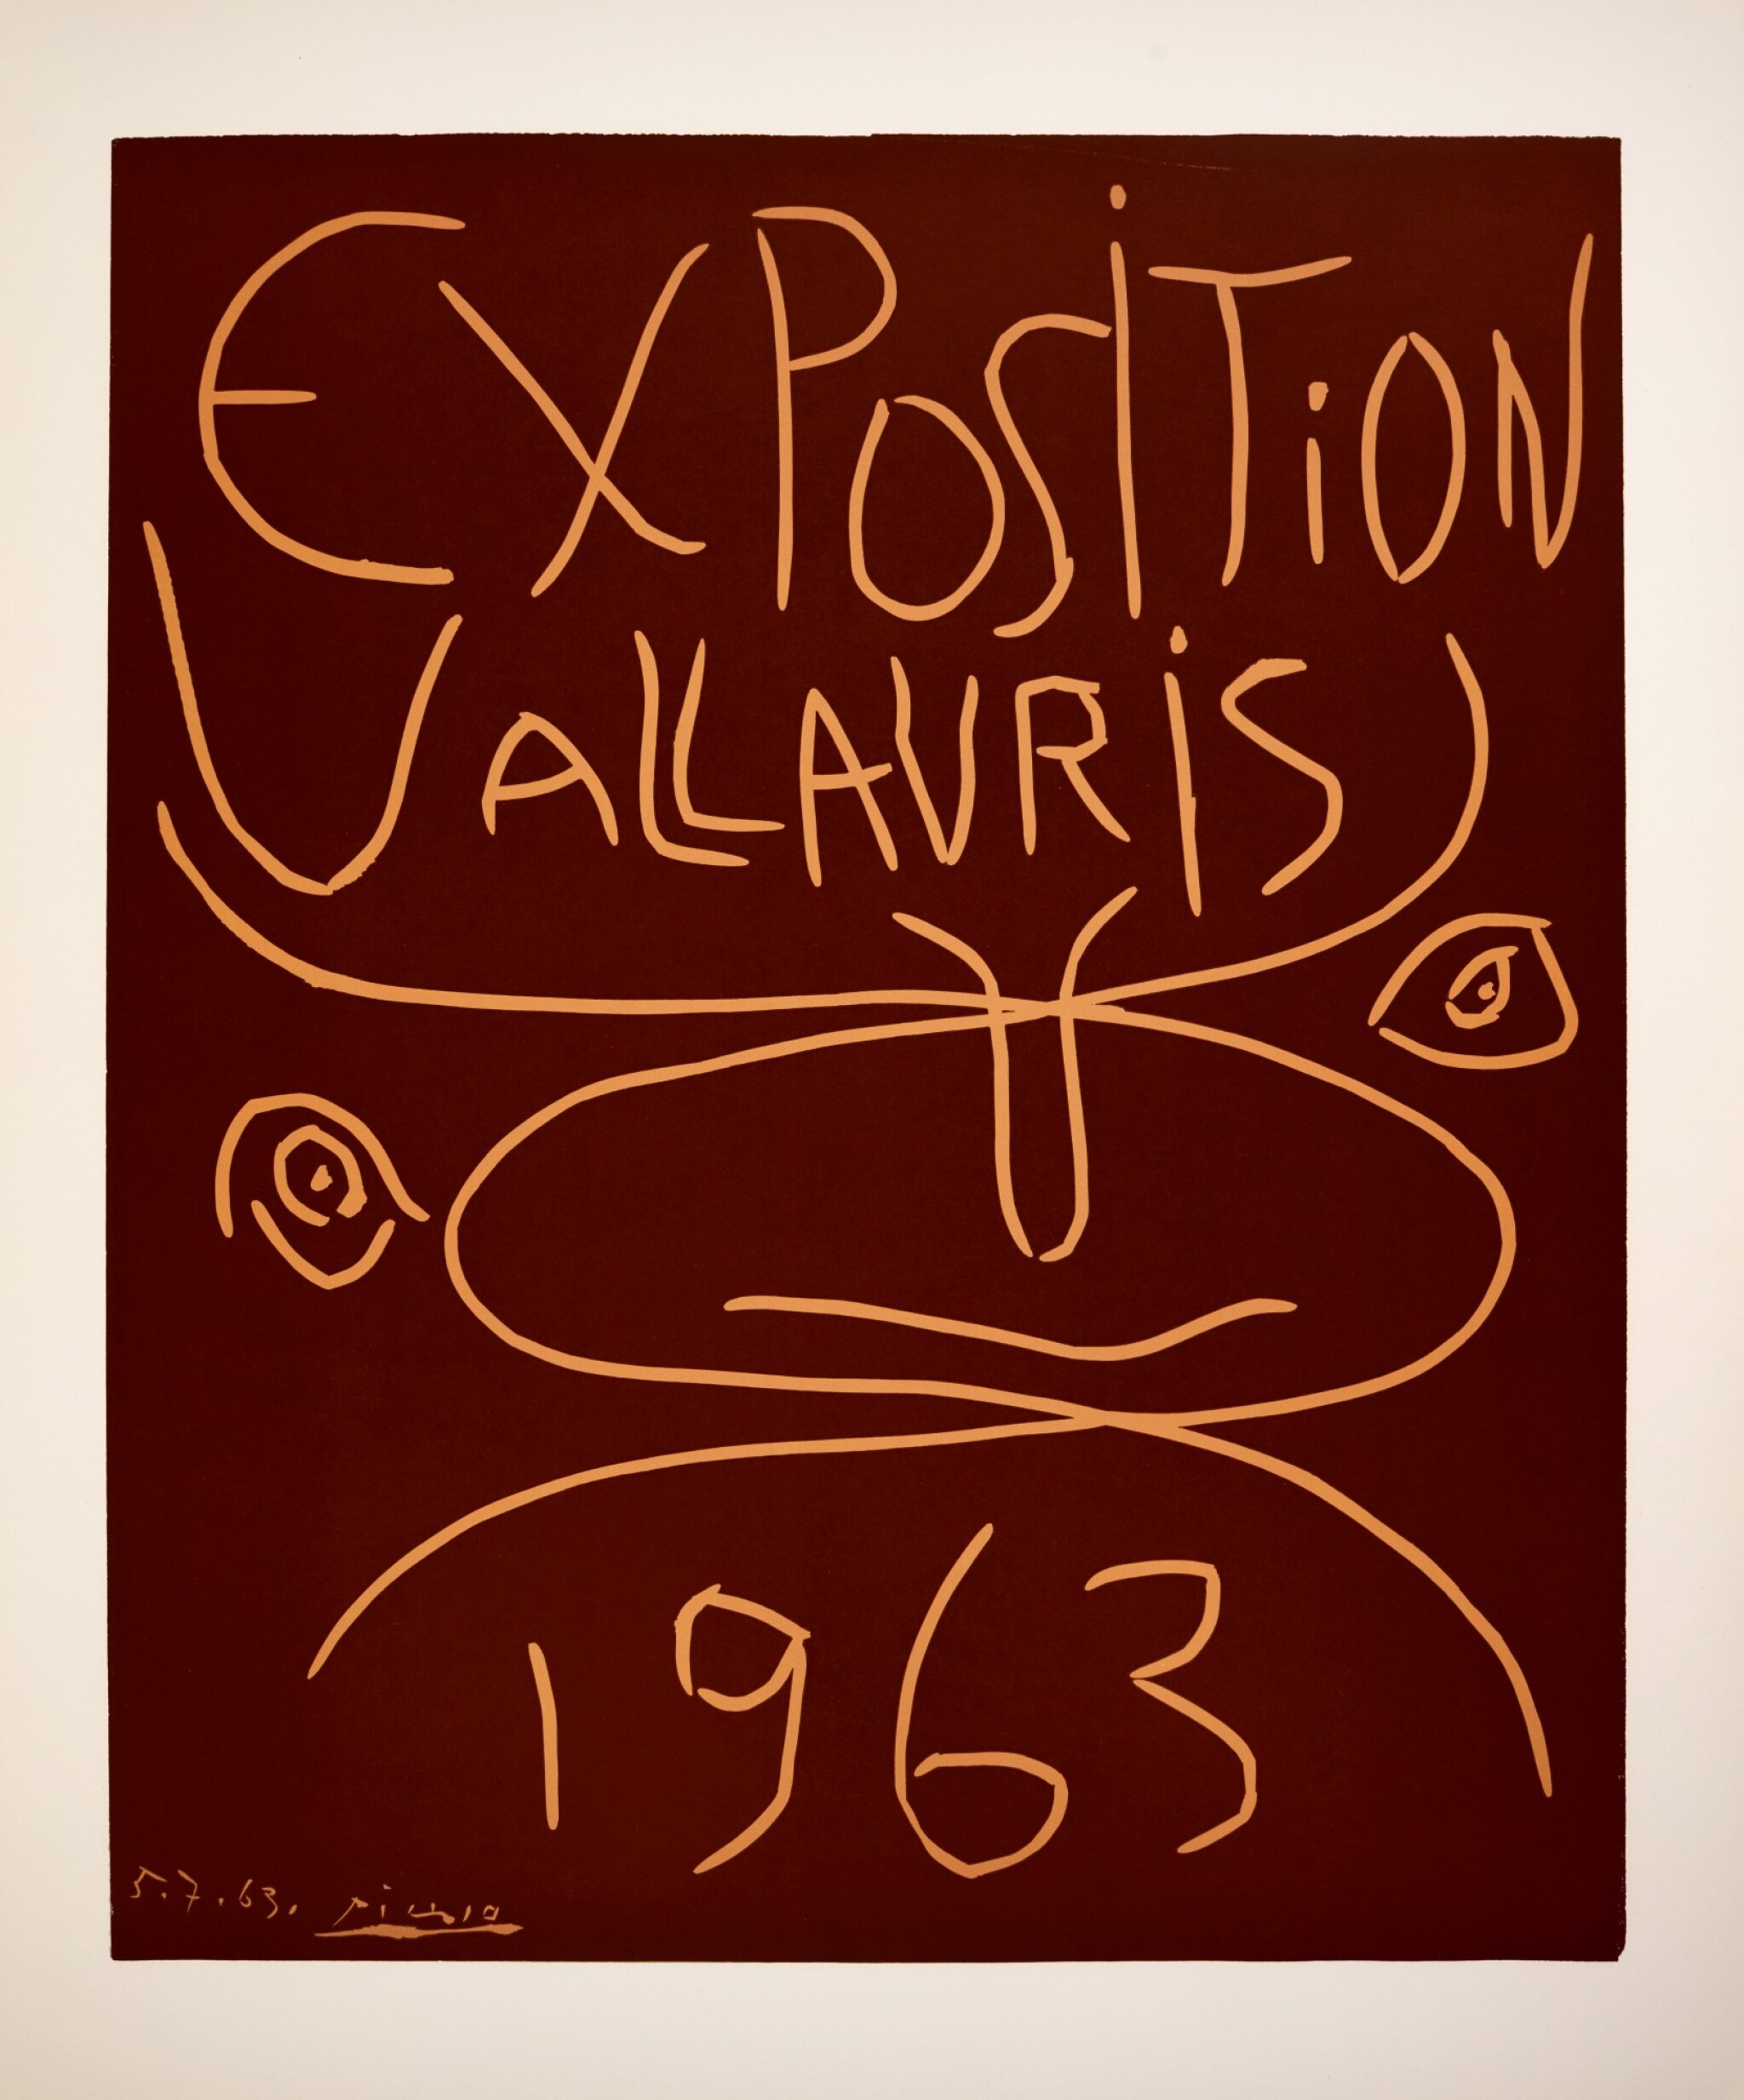 View full screen - View 1 of Lot 114. PABLO PICASSO | EXPOSITION VALLAURIS 1963 (B. 1300; BA. 1341; CZW. 50; PP. L-165).